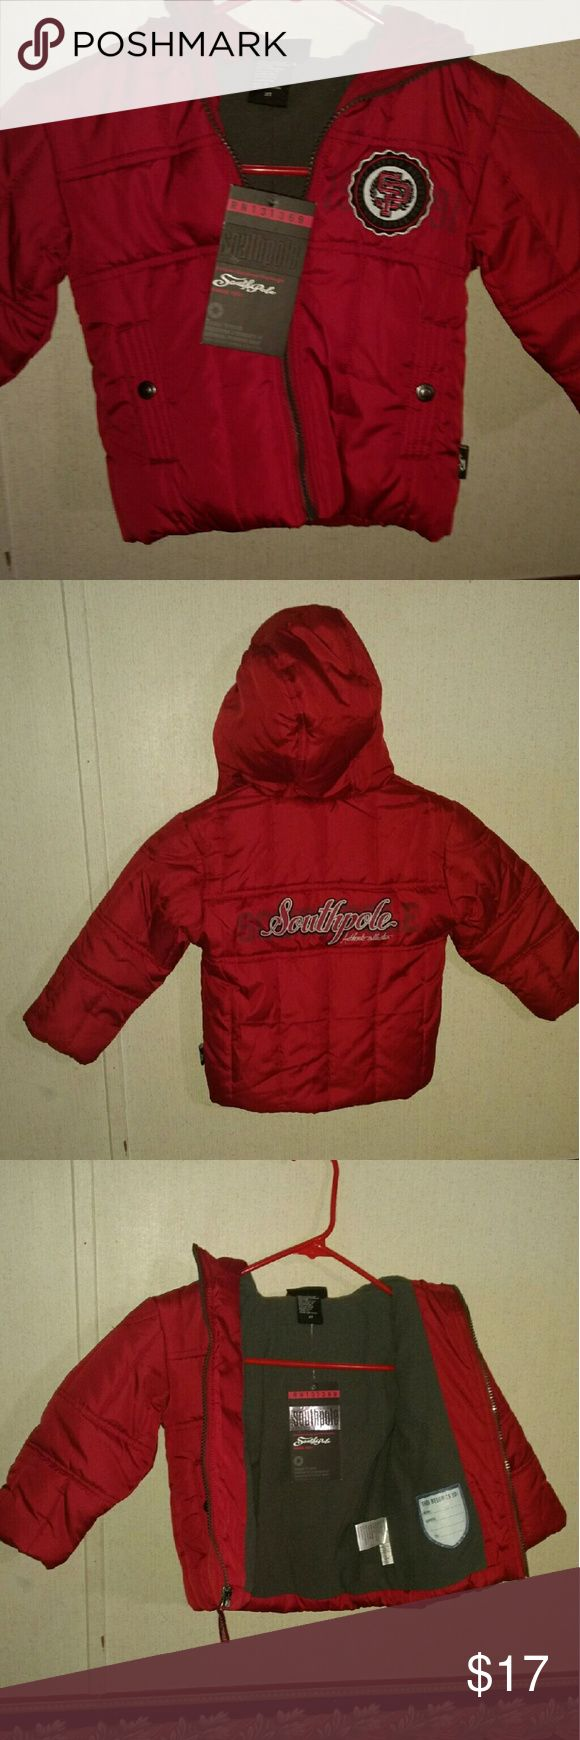 Southpole toddlers hoodie jacket NWT size 2T Southpole toddlers hoodie jacket, NWT, mint condition, main color is red, size 2T could be unisex, looks more like boys jacket, very nice South Pole Jackets & Coats